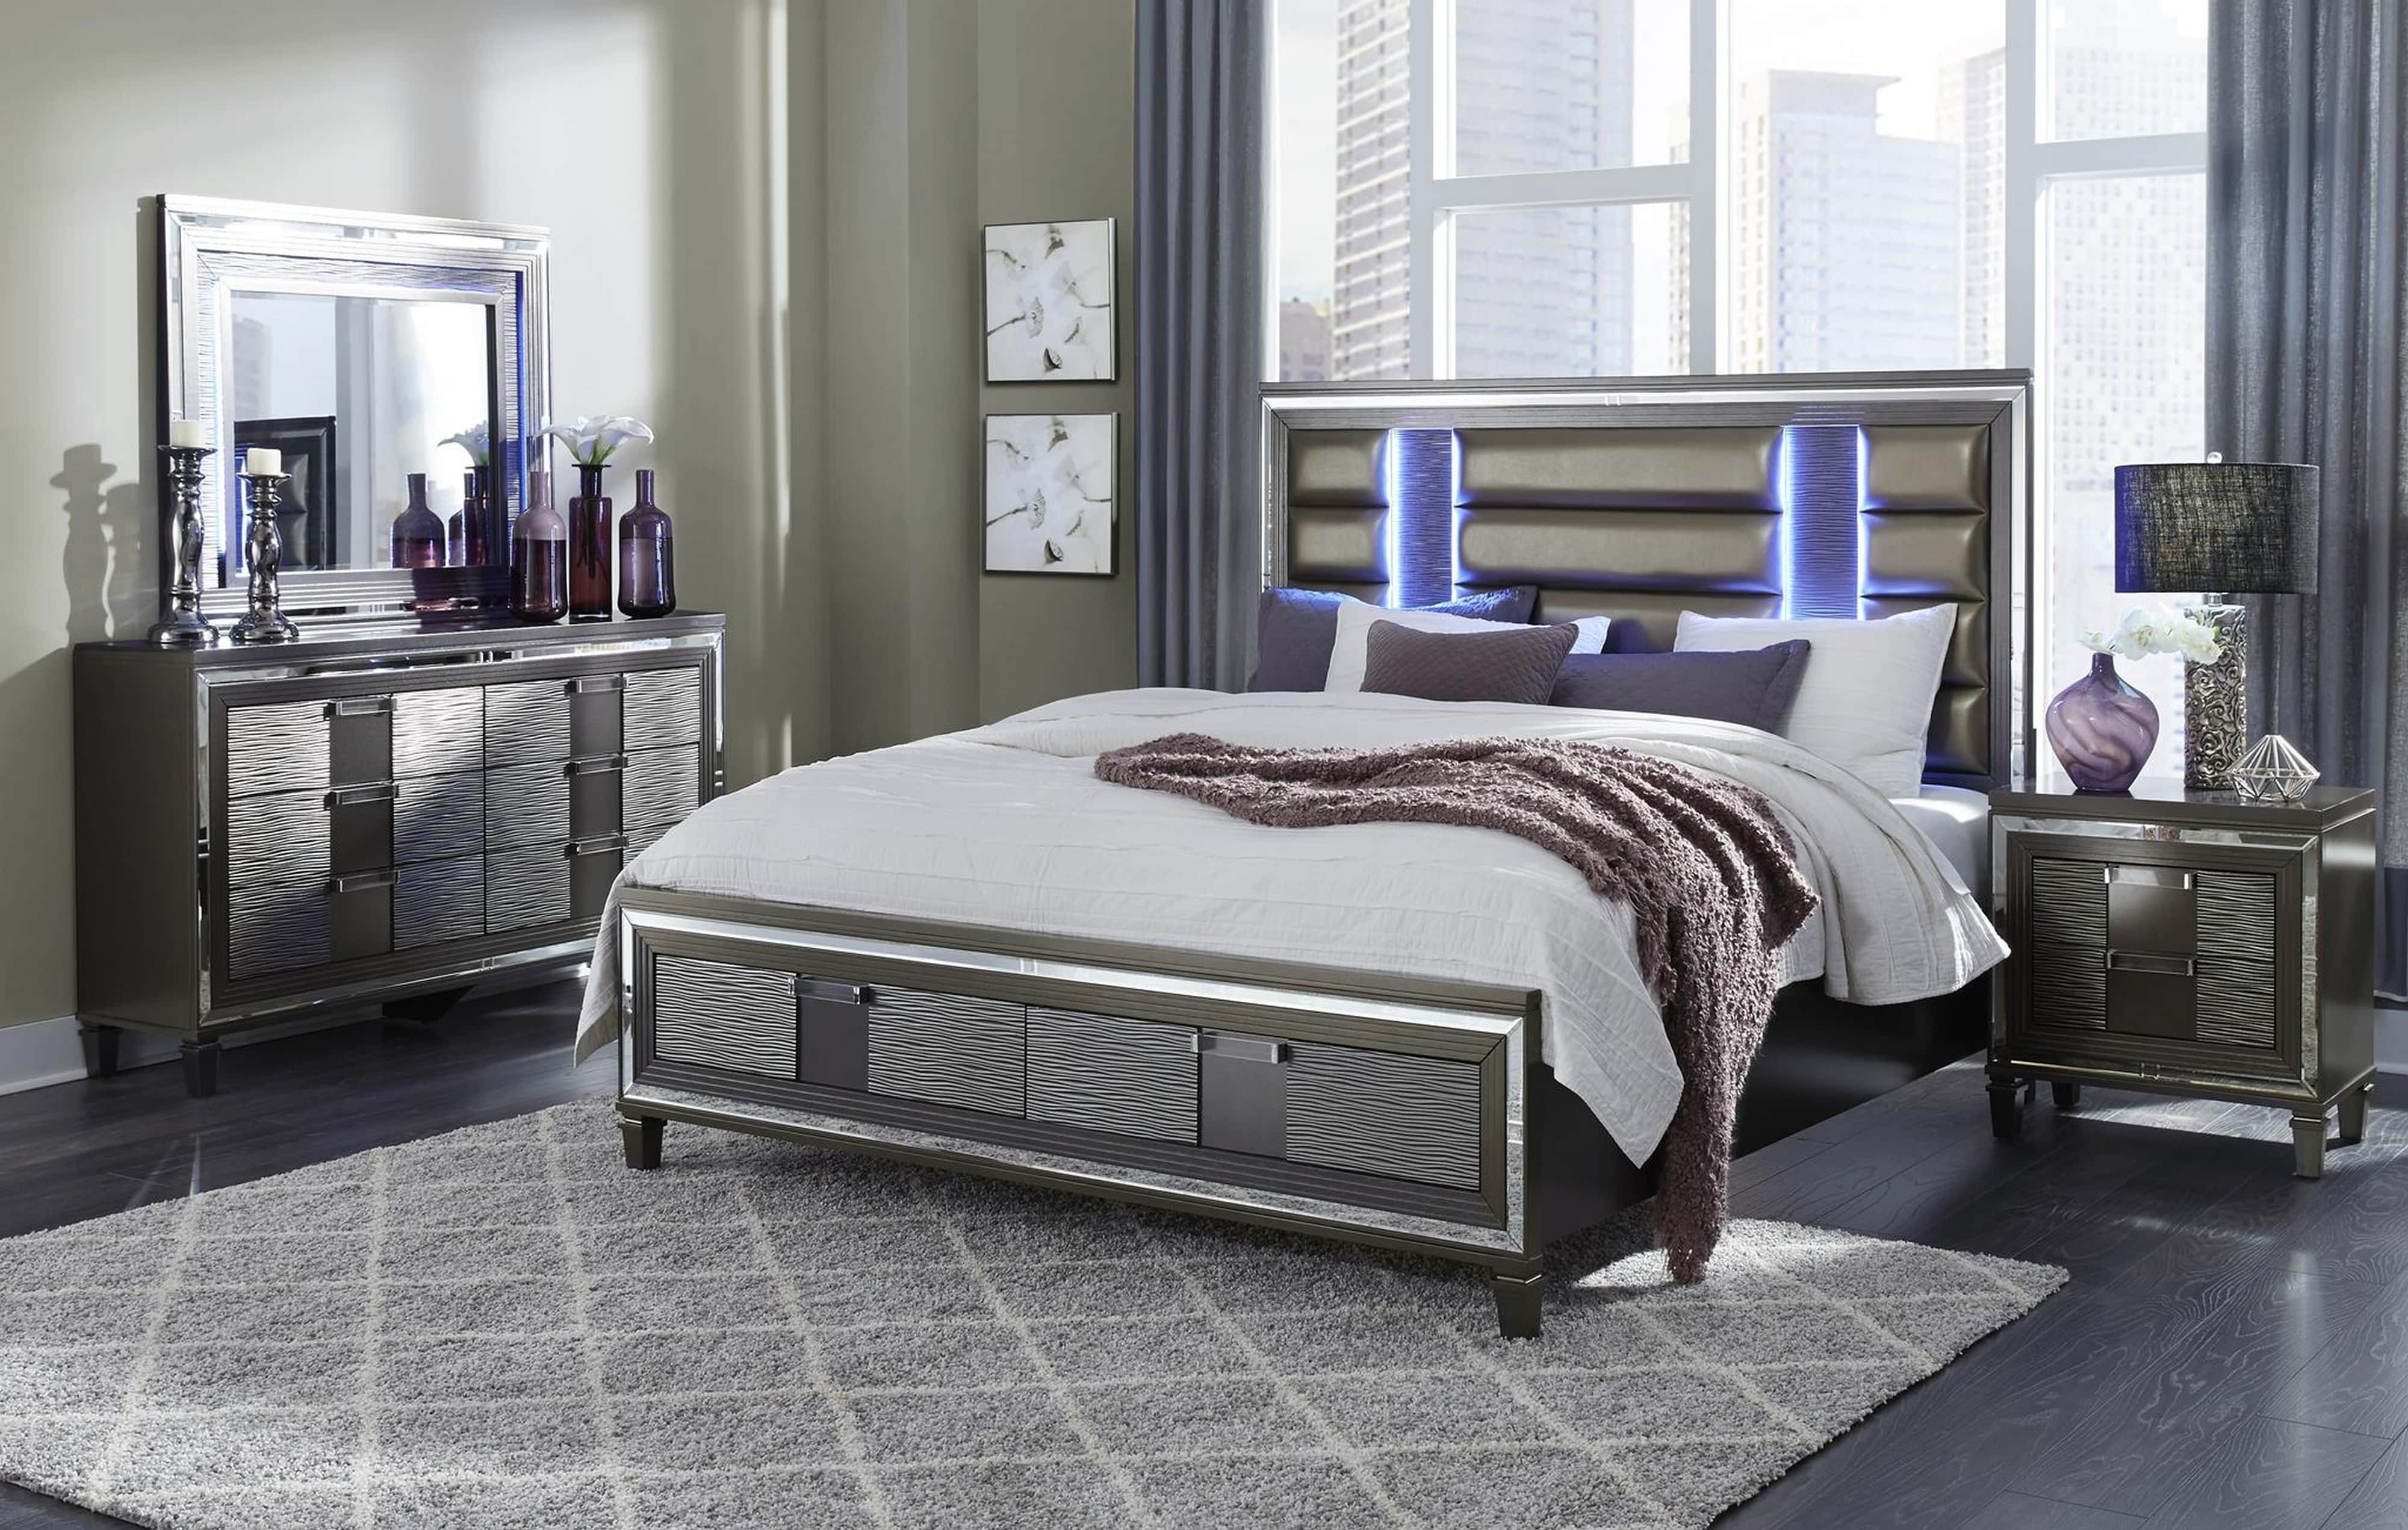 Pisa Metallic Grey Bedroom Set W 8819 Gray Bed By Global Furniture